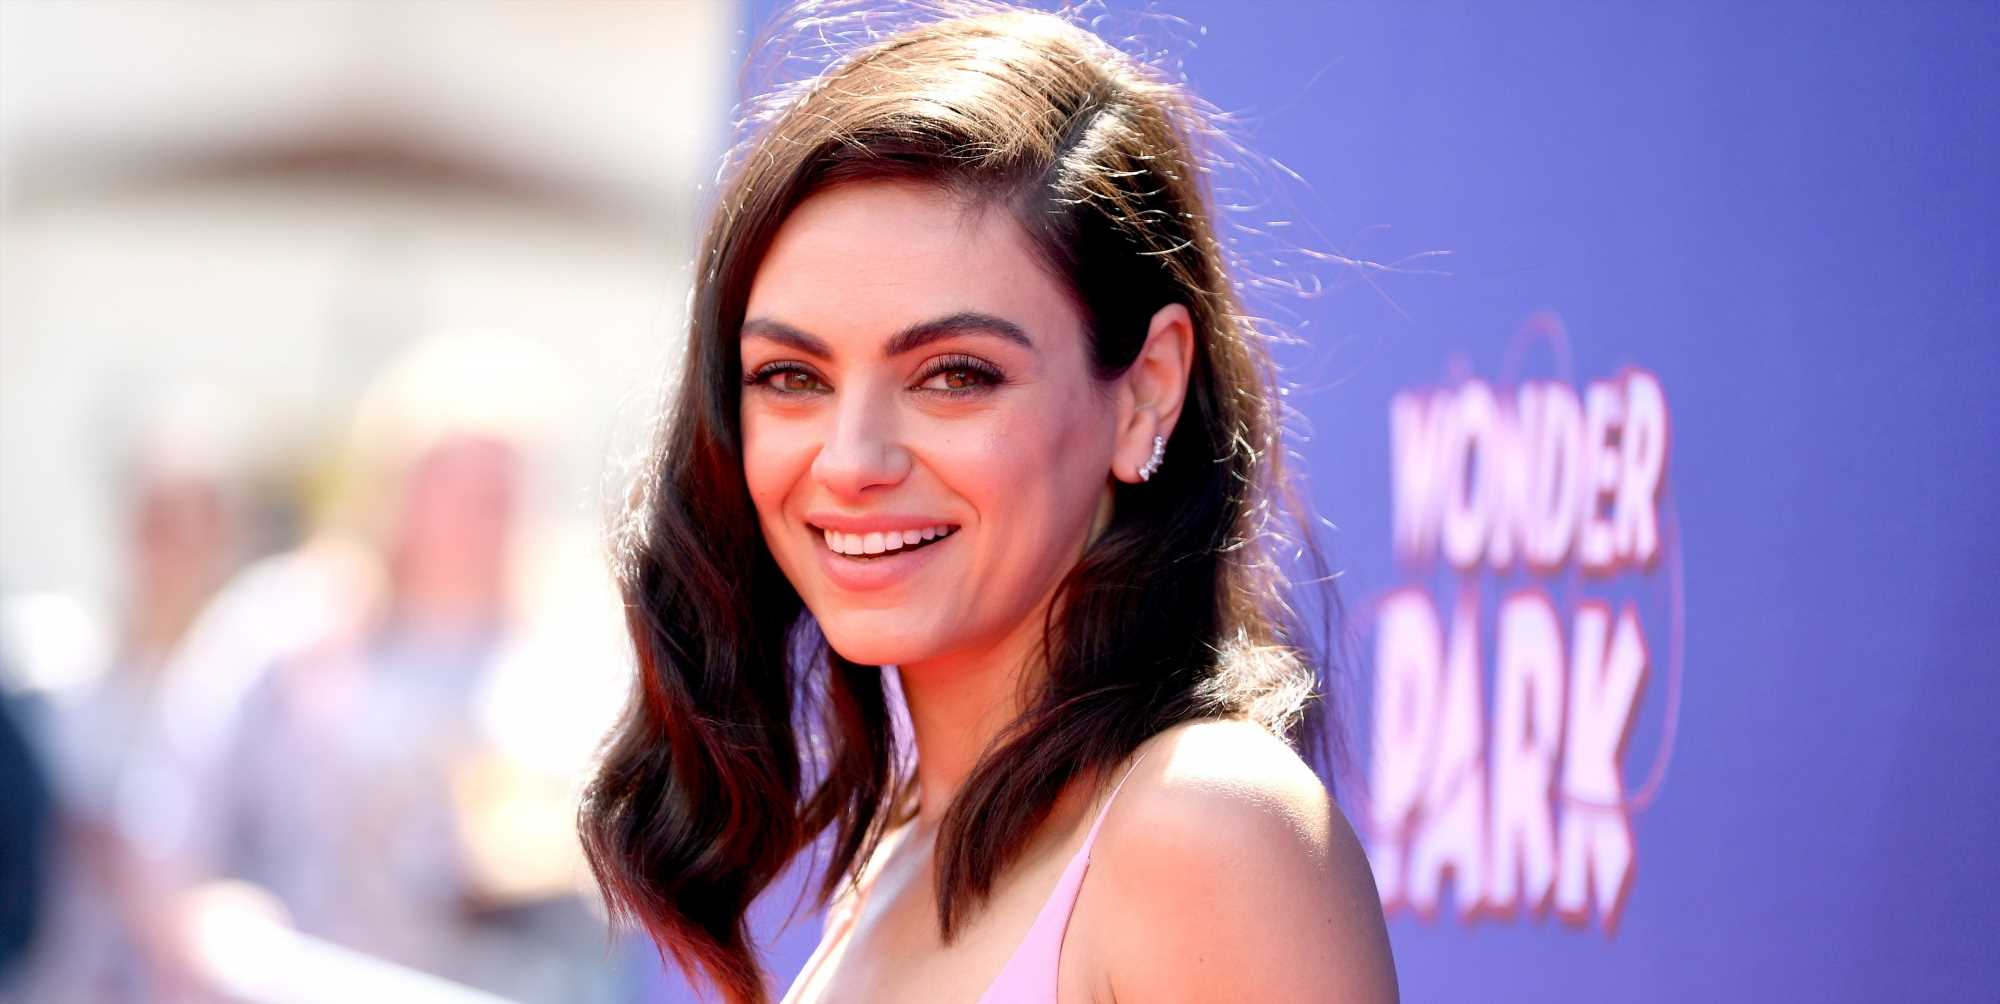 Mila Kunis Just Dyed Her Hair Blonde and Blue and You Won't Even Recognize Her Anymore